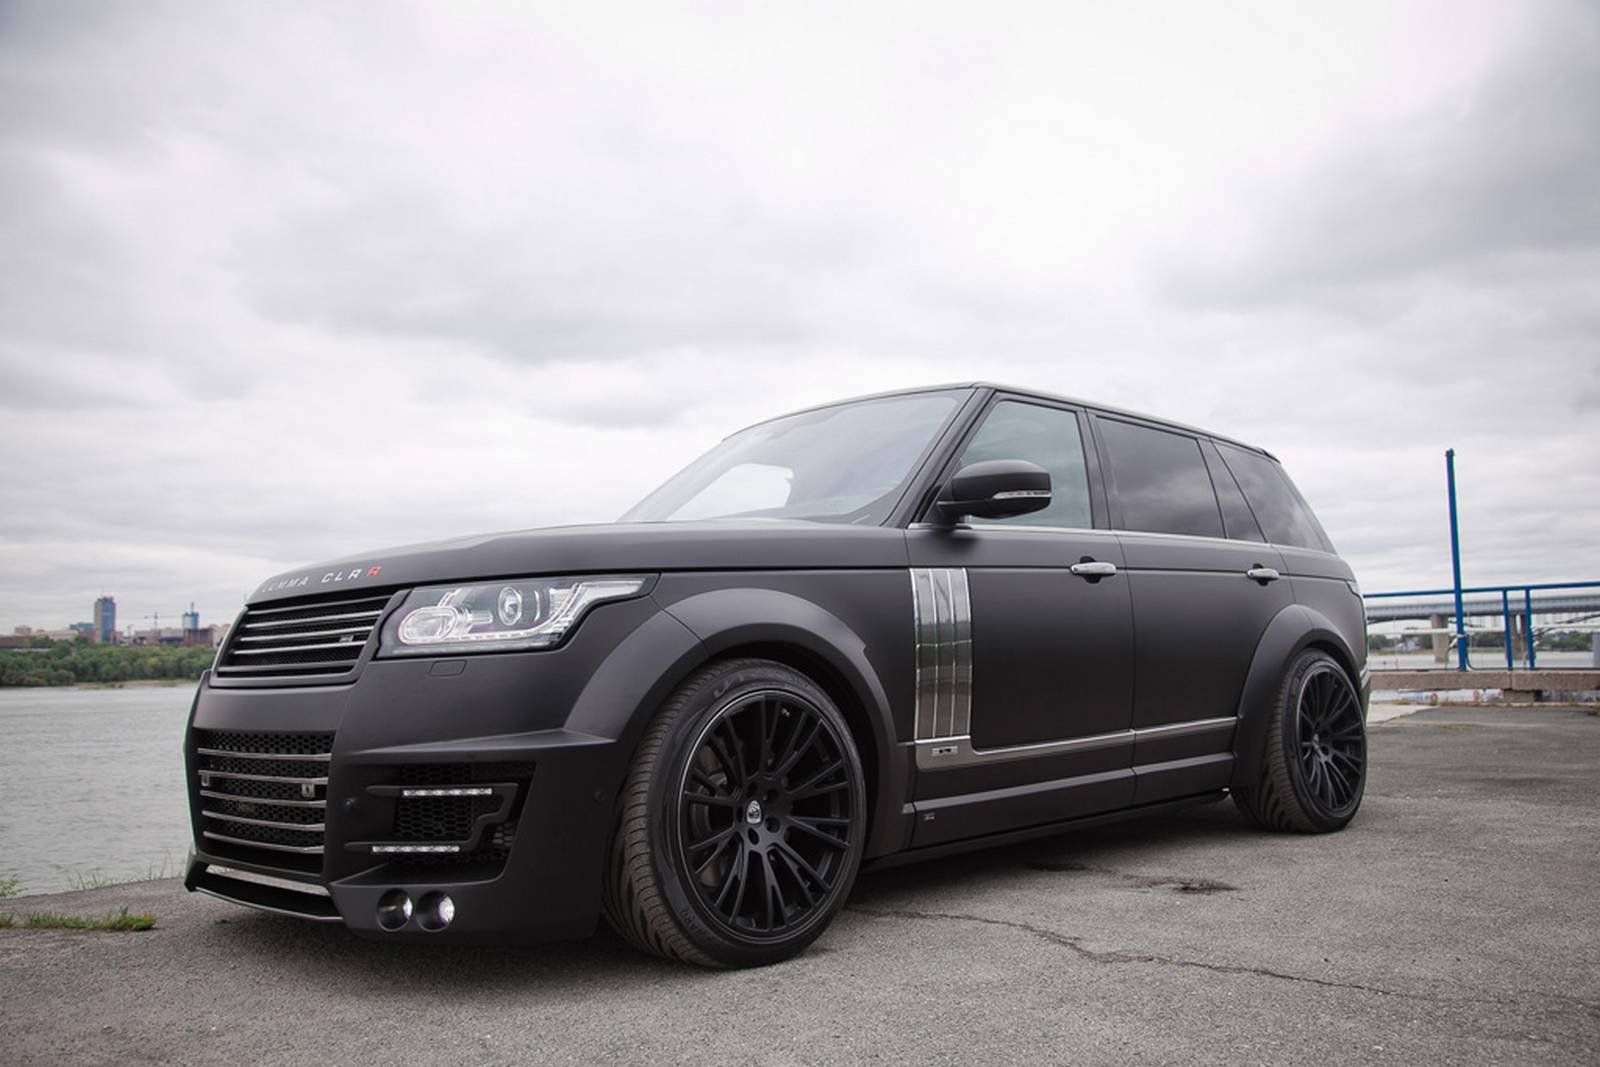 official lumma clr r range rover lwb gtspirit. Black Bedroom Furniture Sets. Home Design Ideas